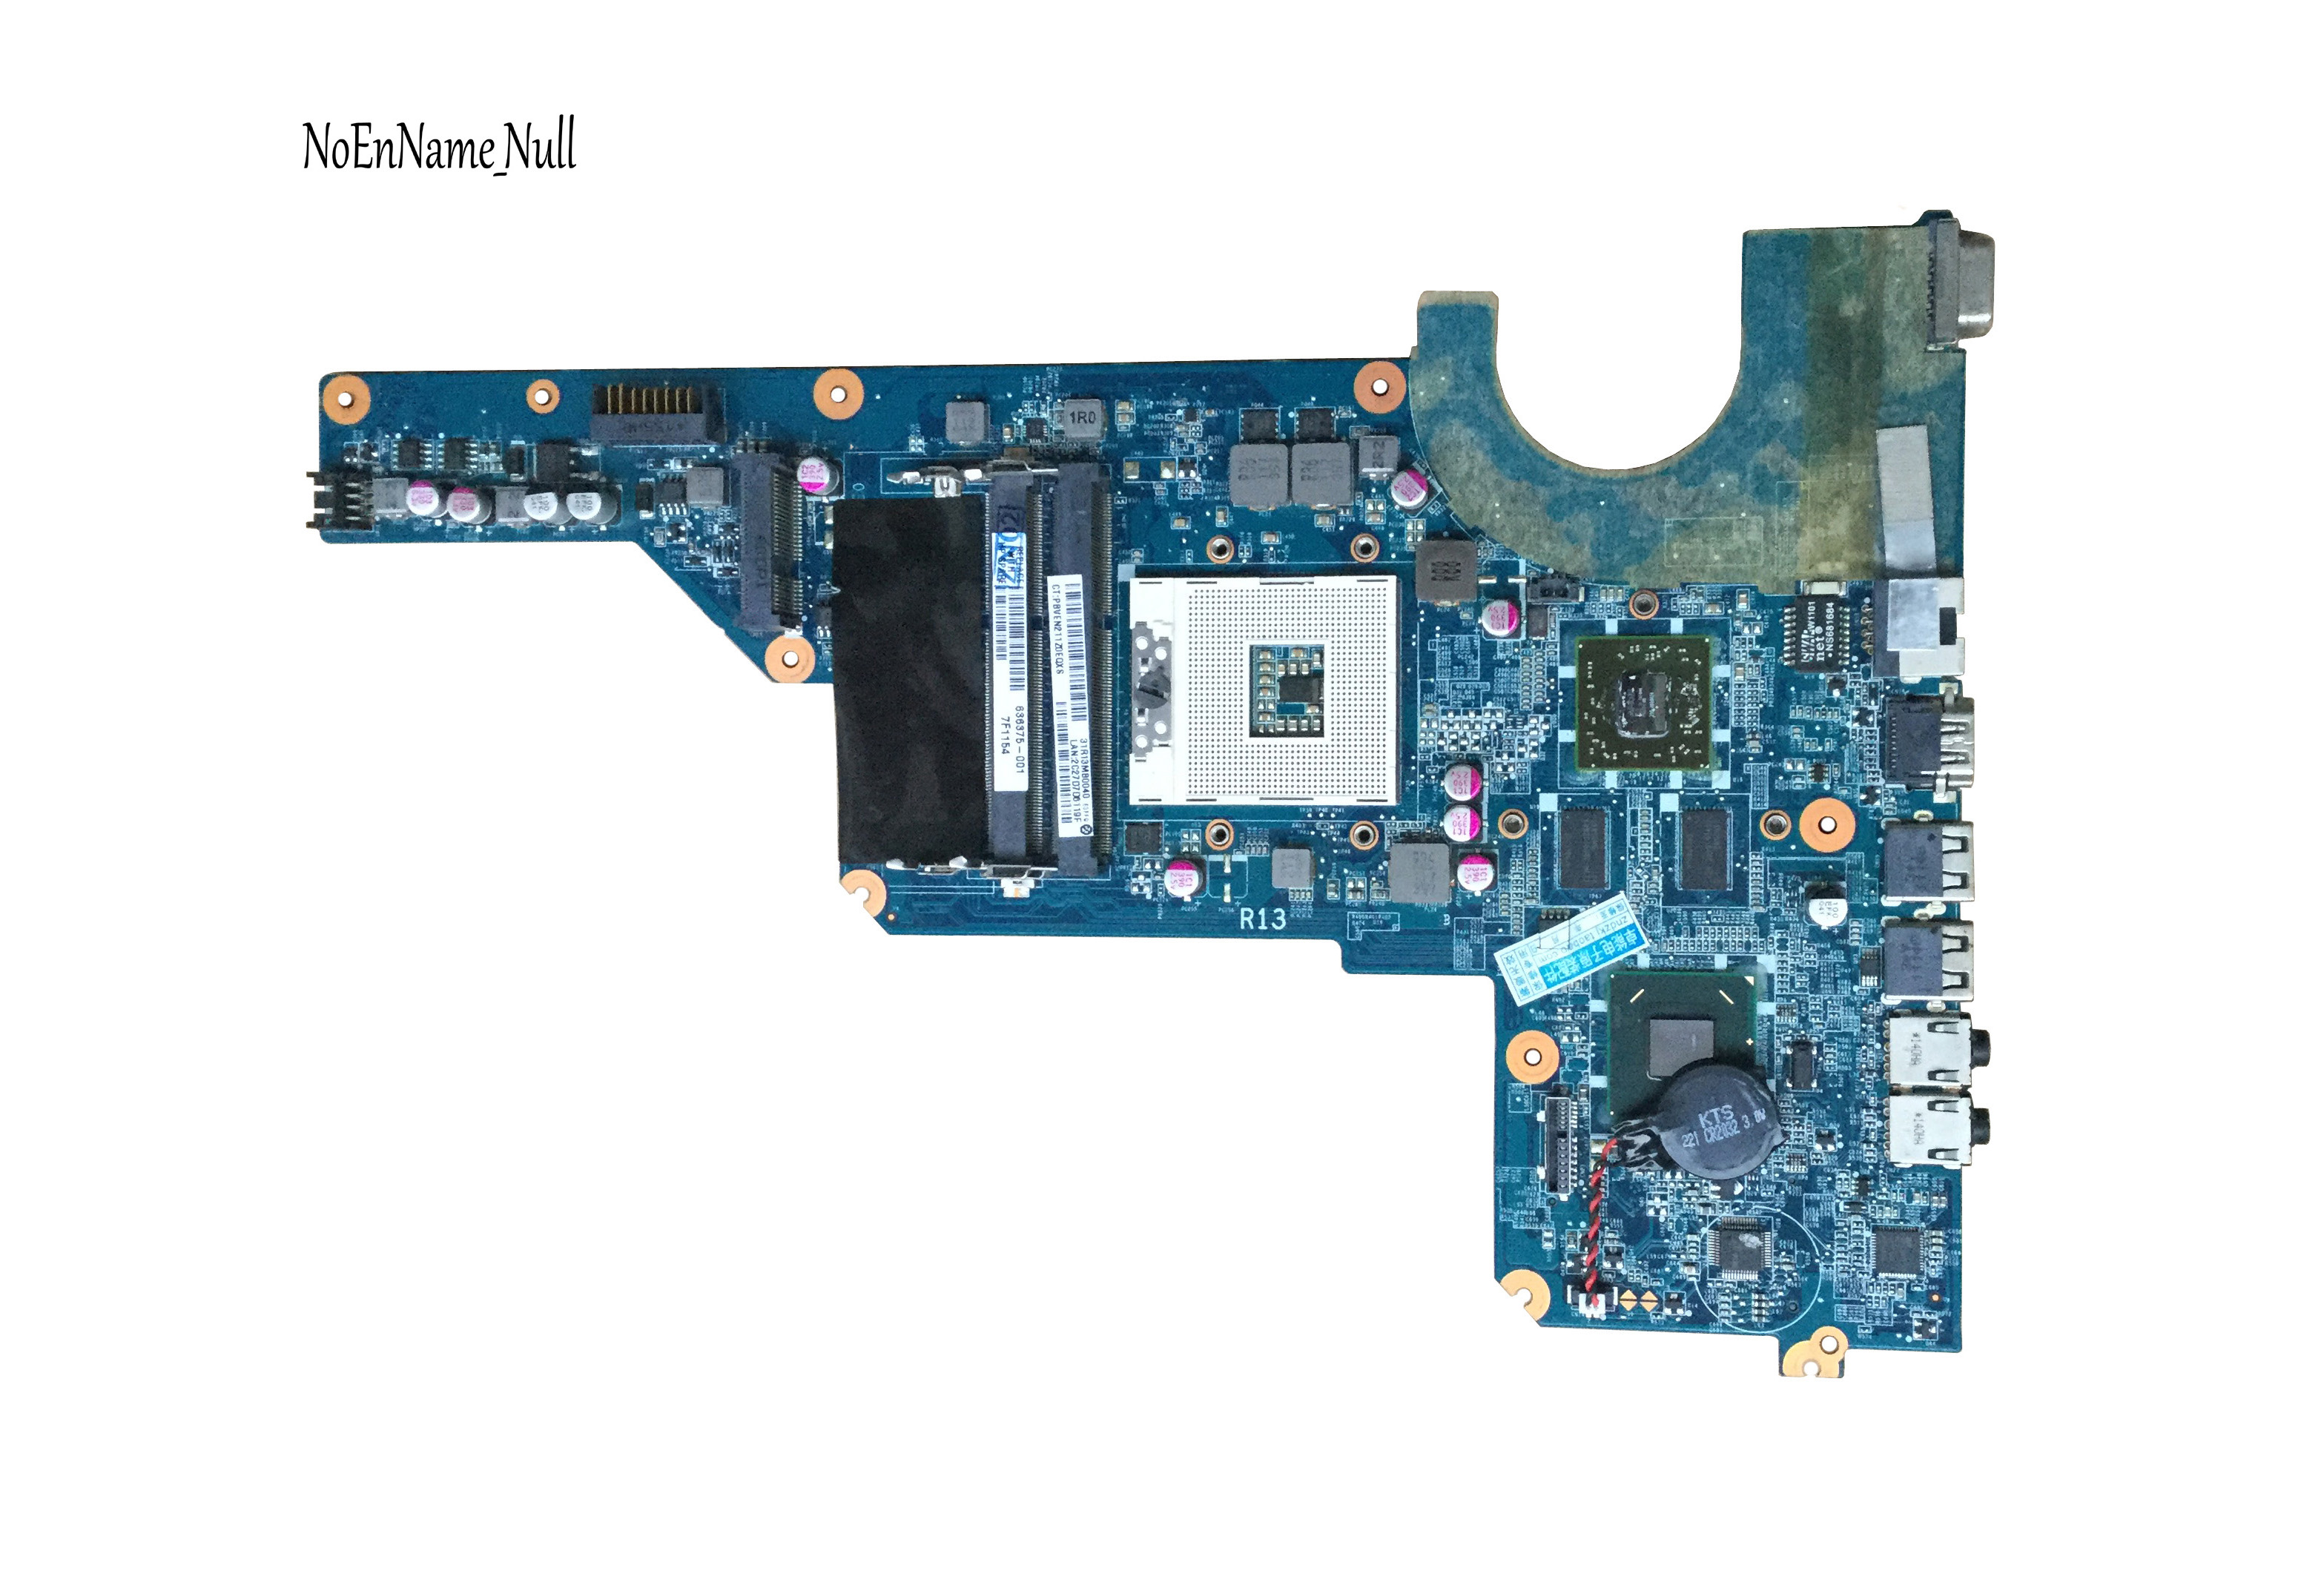 650199 001 636375 001 for HP pavilion DAOR13MB6E1 G4 1000 G4 G6 laptop motherboard with hm65 chipset 100% full tested ok|laptop motherboard|g6 motherboard|motherboard motherboard - title=